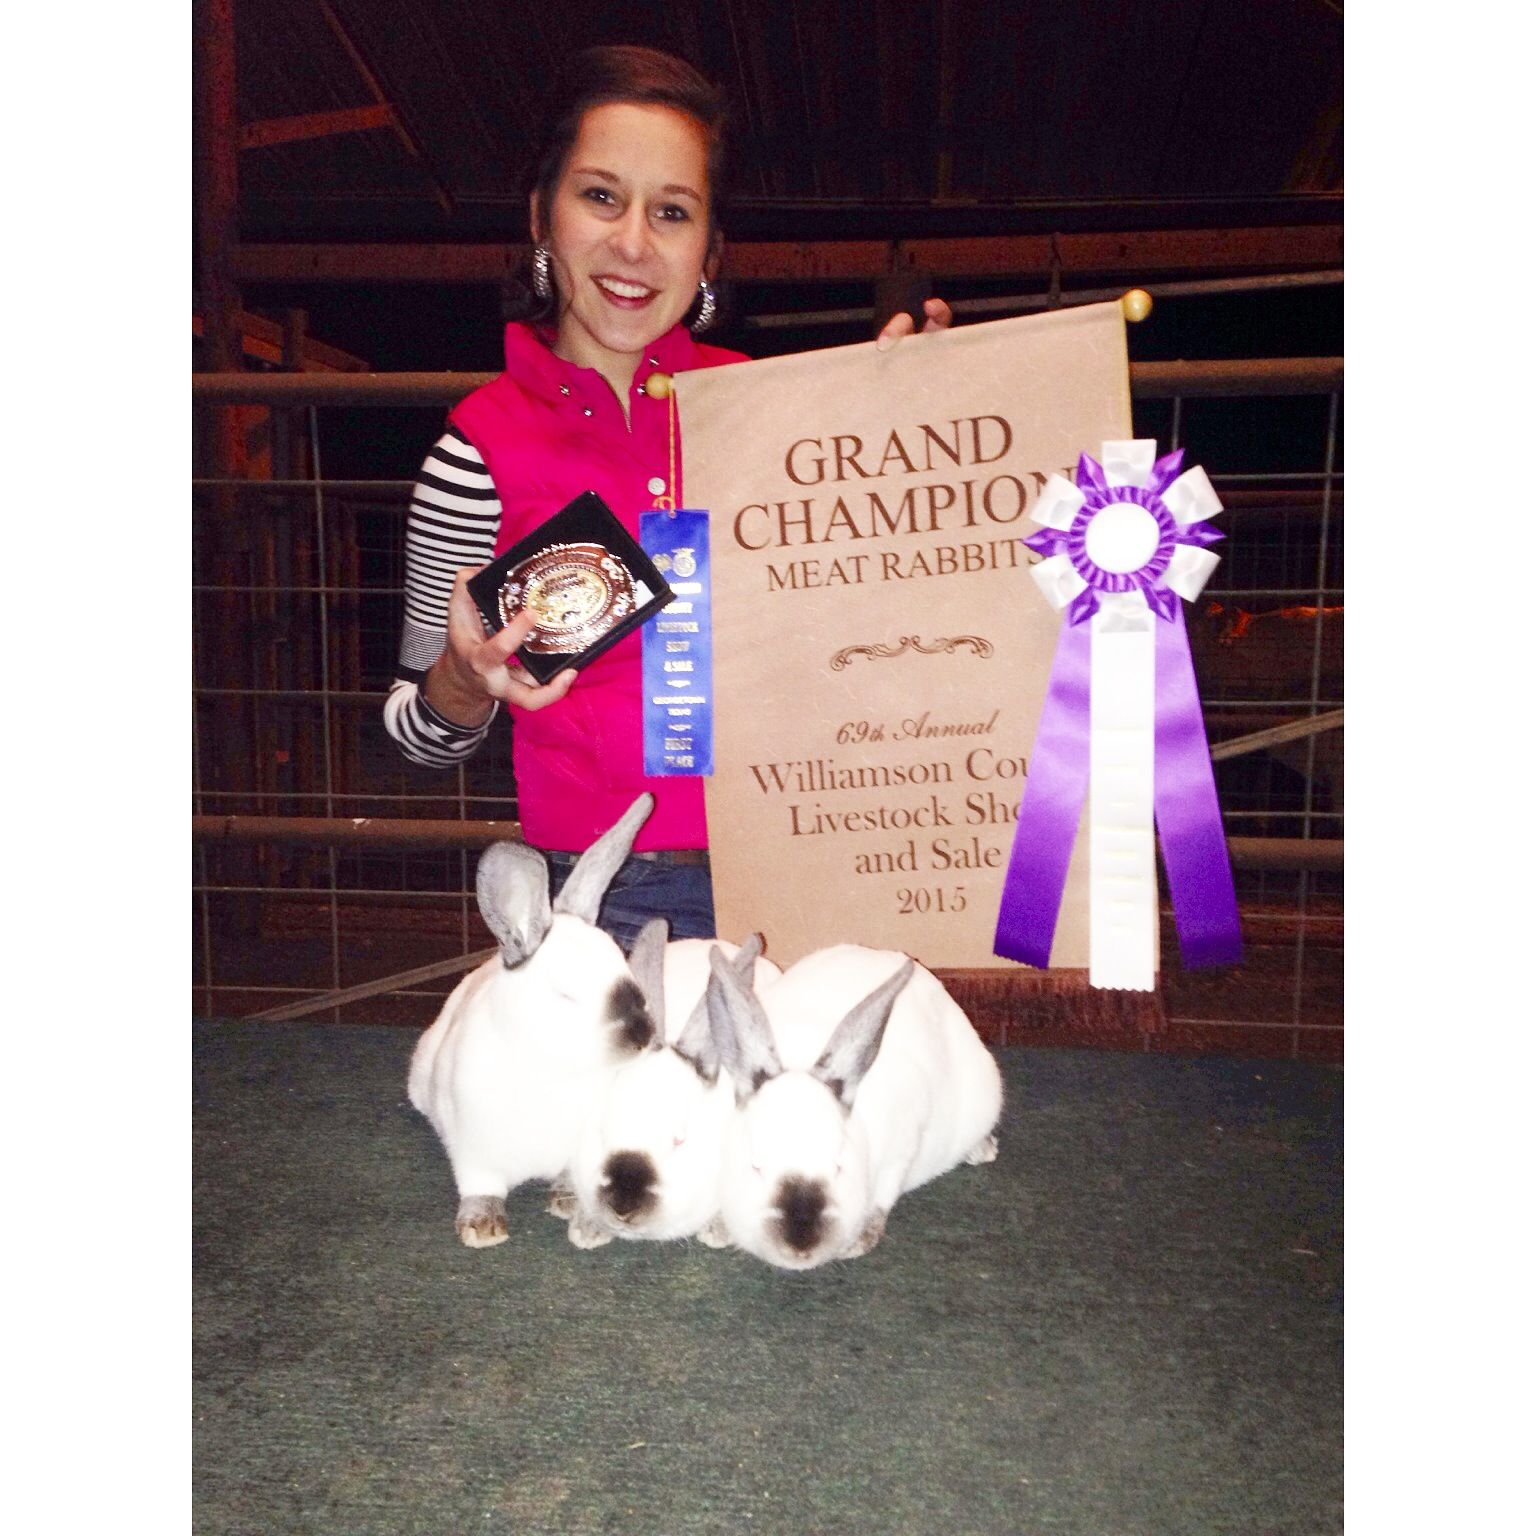 Another Grand Champion pen of rabbits from Busters Bunnies ...